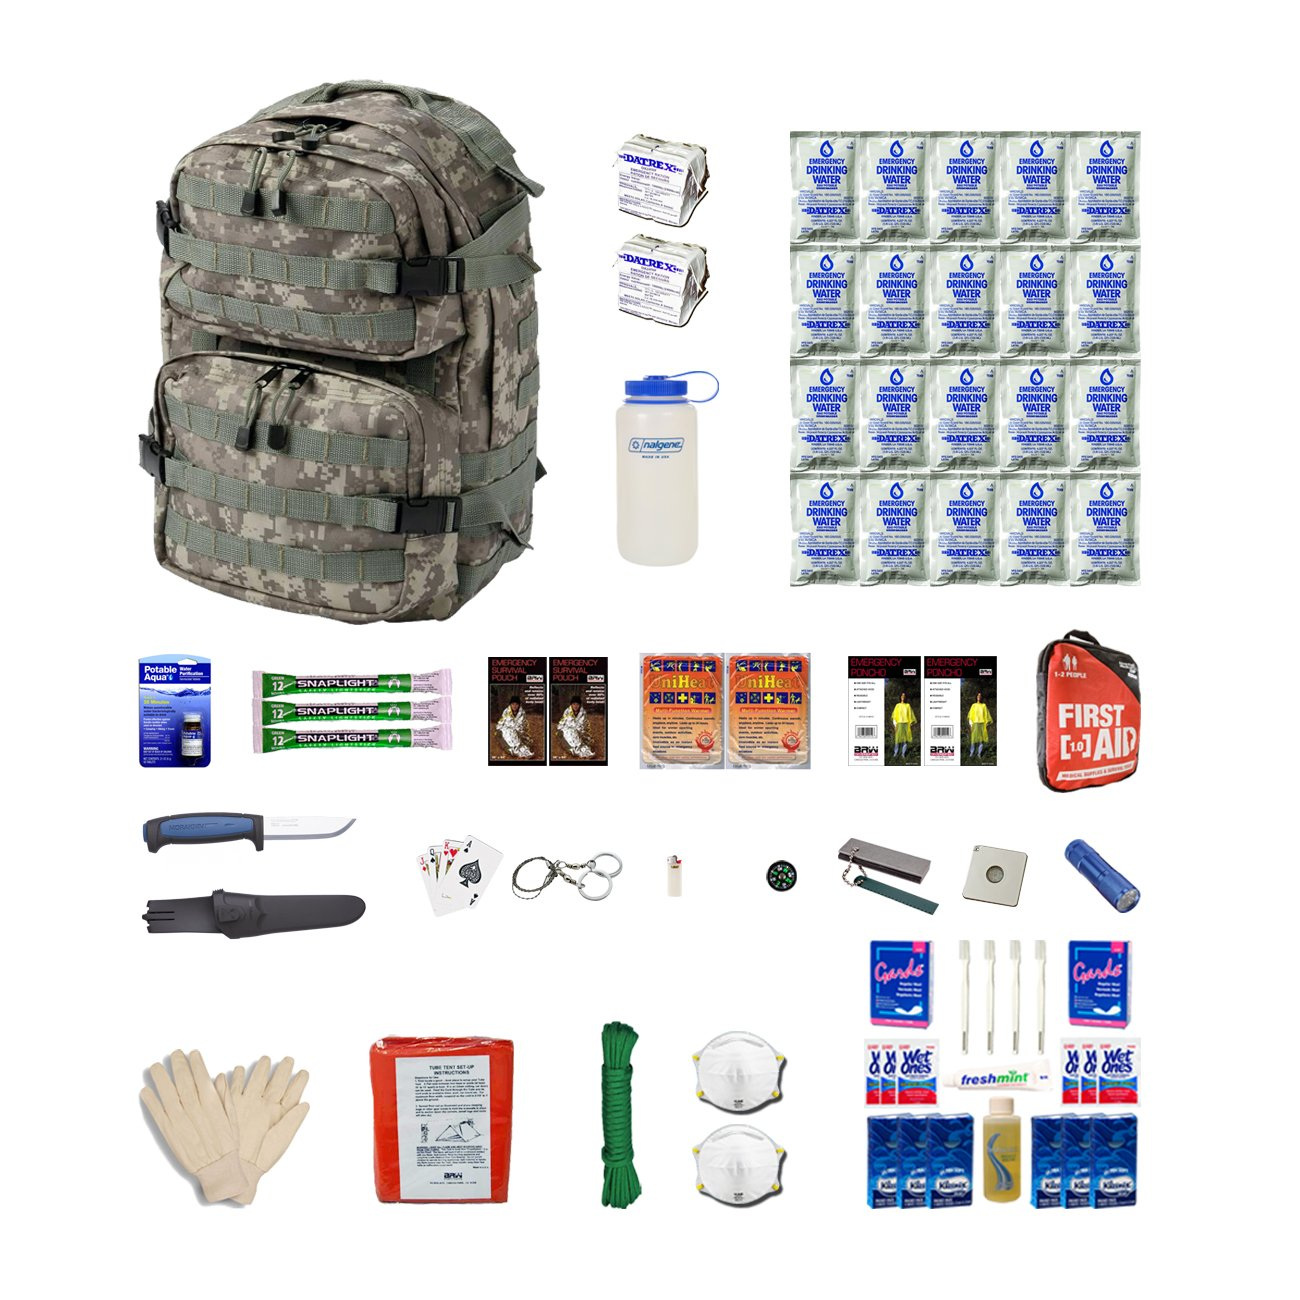 Extreme Survival Kit Two For Earthquakes, Hurricanes, Floods, Tornados, Emergency Preparedness